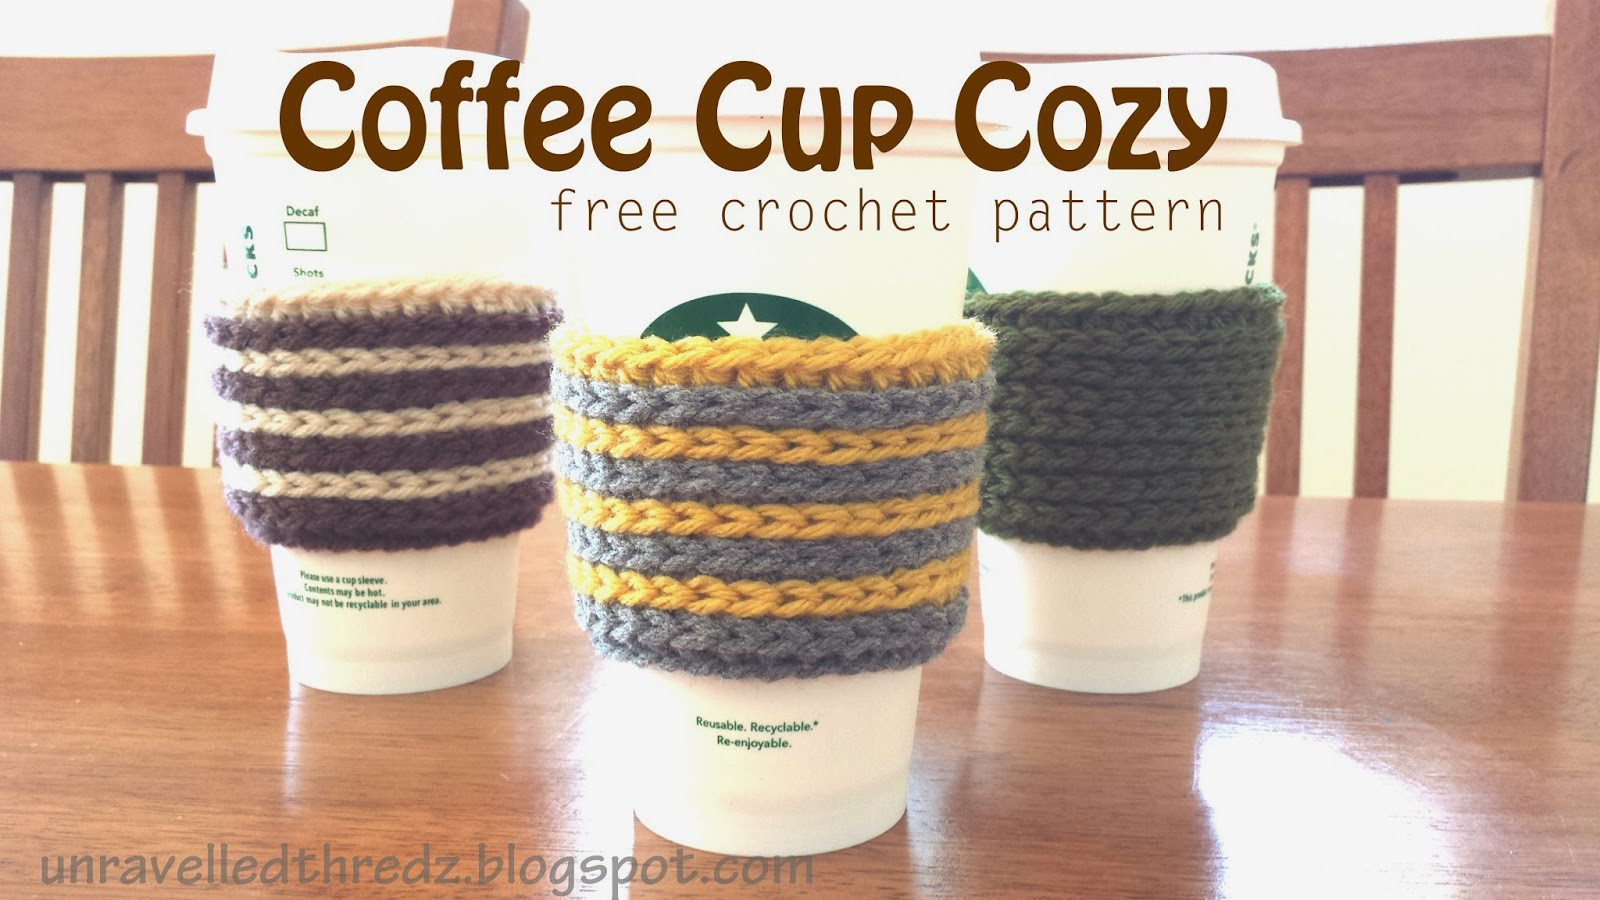 Crochet Coffee Cup Cozy Inspirational Crochet Class Beginning Crochet Sparkleez Crystles Of Crochet Coffee Cup Cozy Elegant Sunny Stitching Pinned It & Did It Mug Cozy Crochet